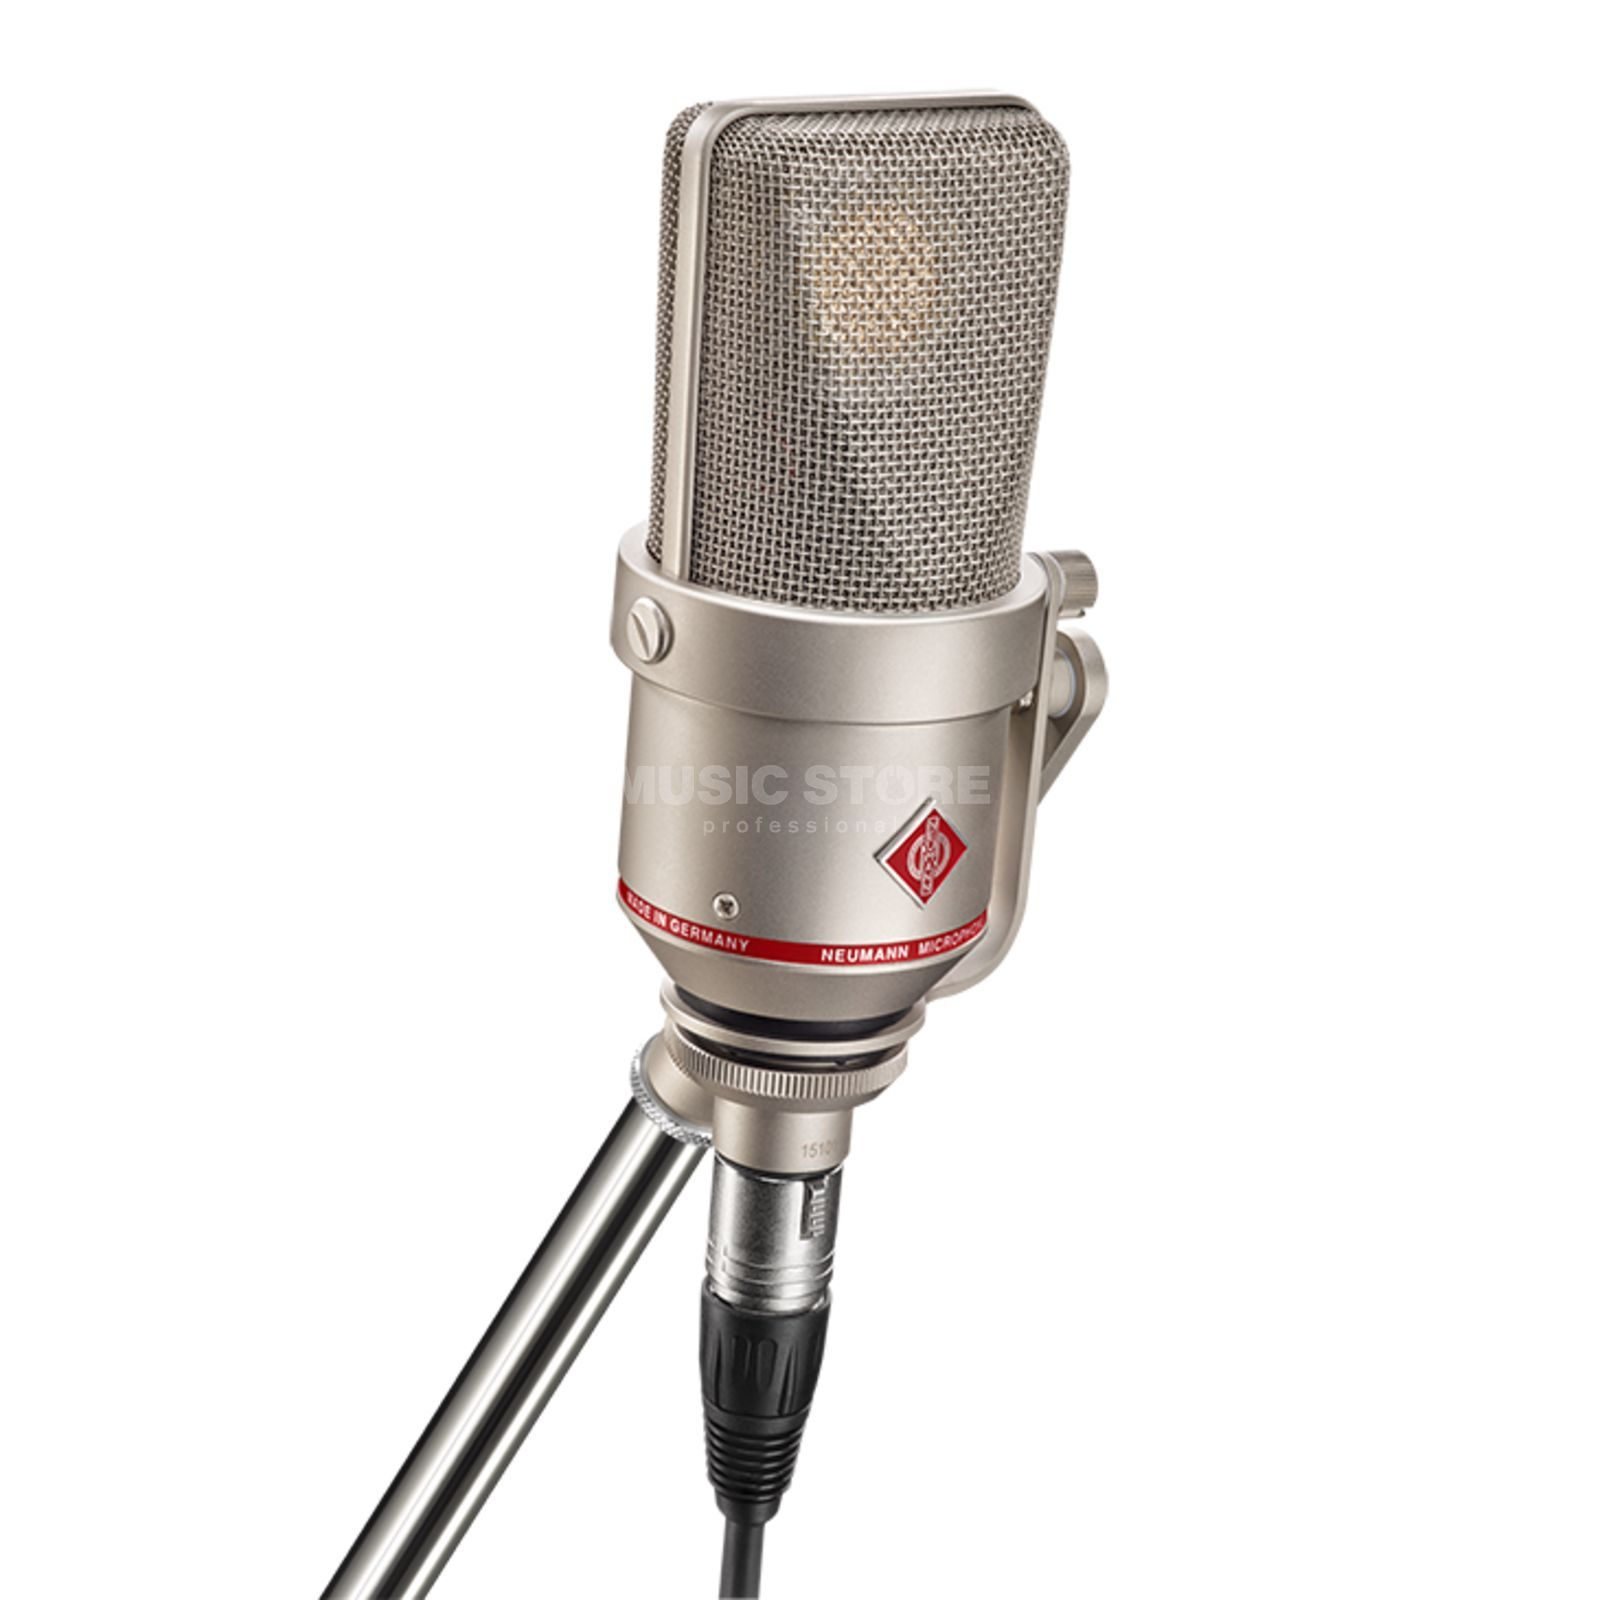 Neumann TLM 170 R ni Condenser Microphone Product Image